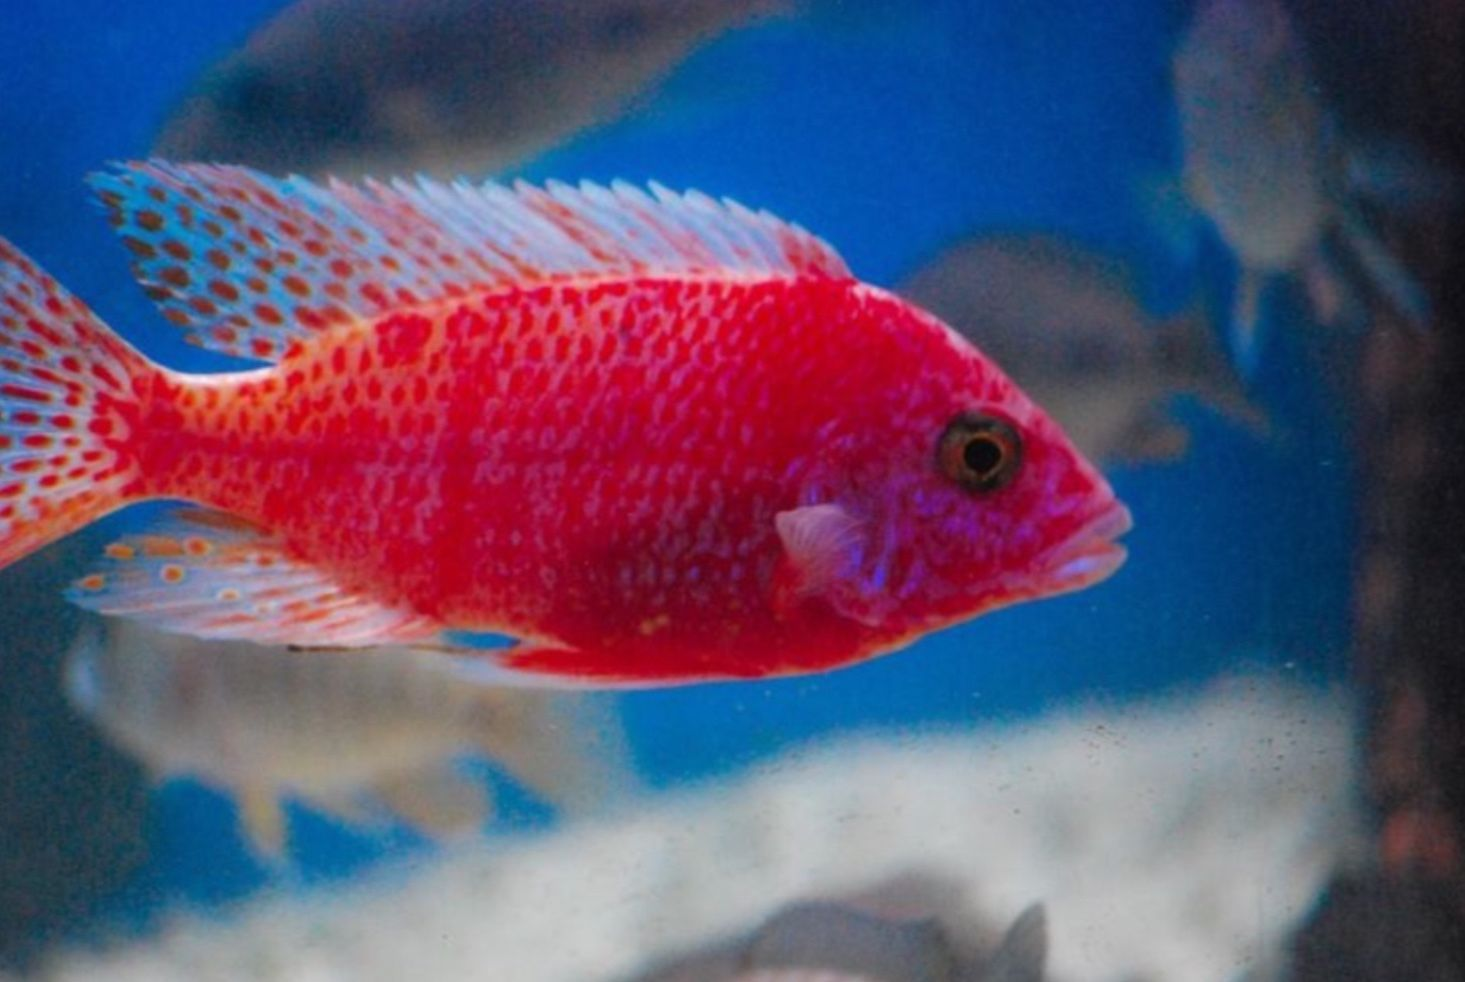 Aquarium Fish For Sale | Aquarium | Pinterest | Aquarium fish and ...